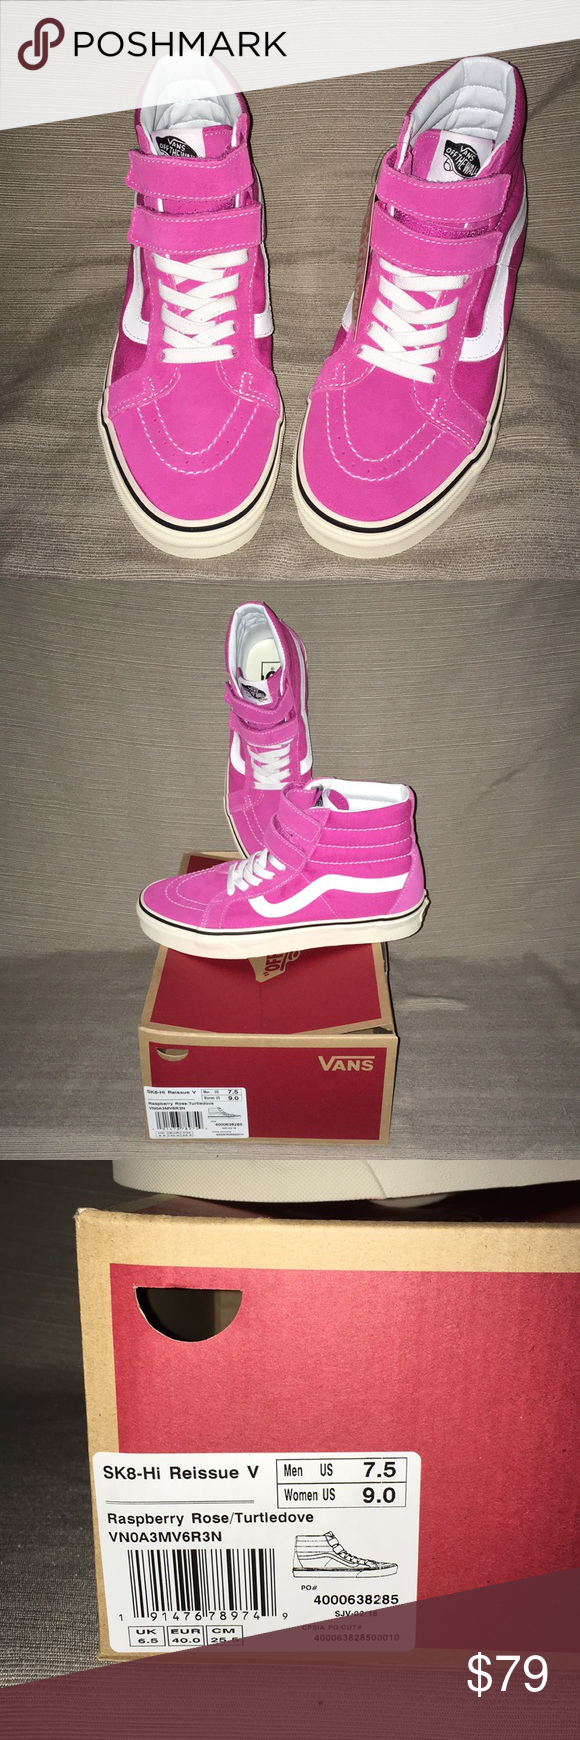 931fc00c0dfe80 VANS sz 9 W 7.5 M SK8-Hi Raspberry high top shoes New with tags and box vans  hot pink called Raspberry rose and turtledove colors.